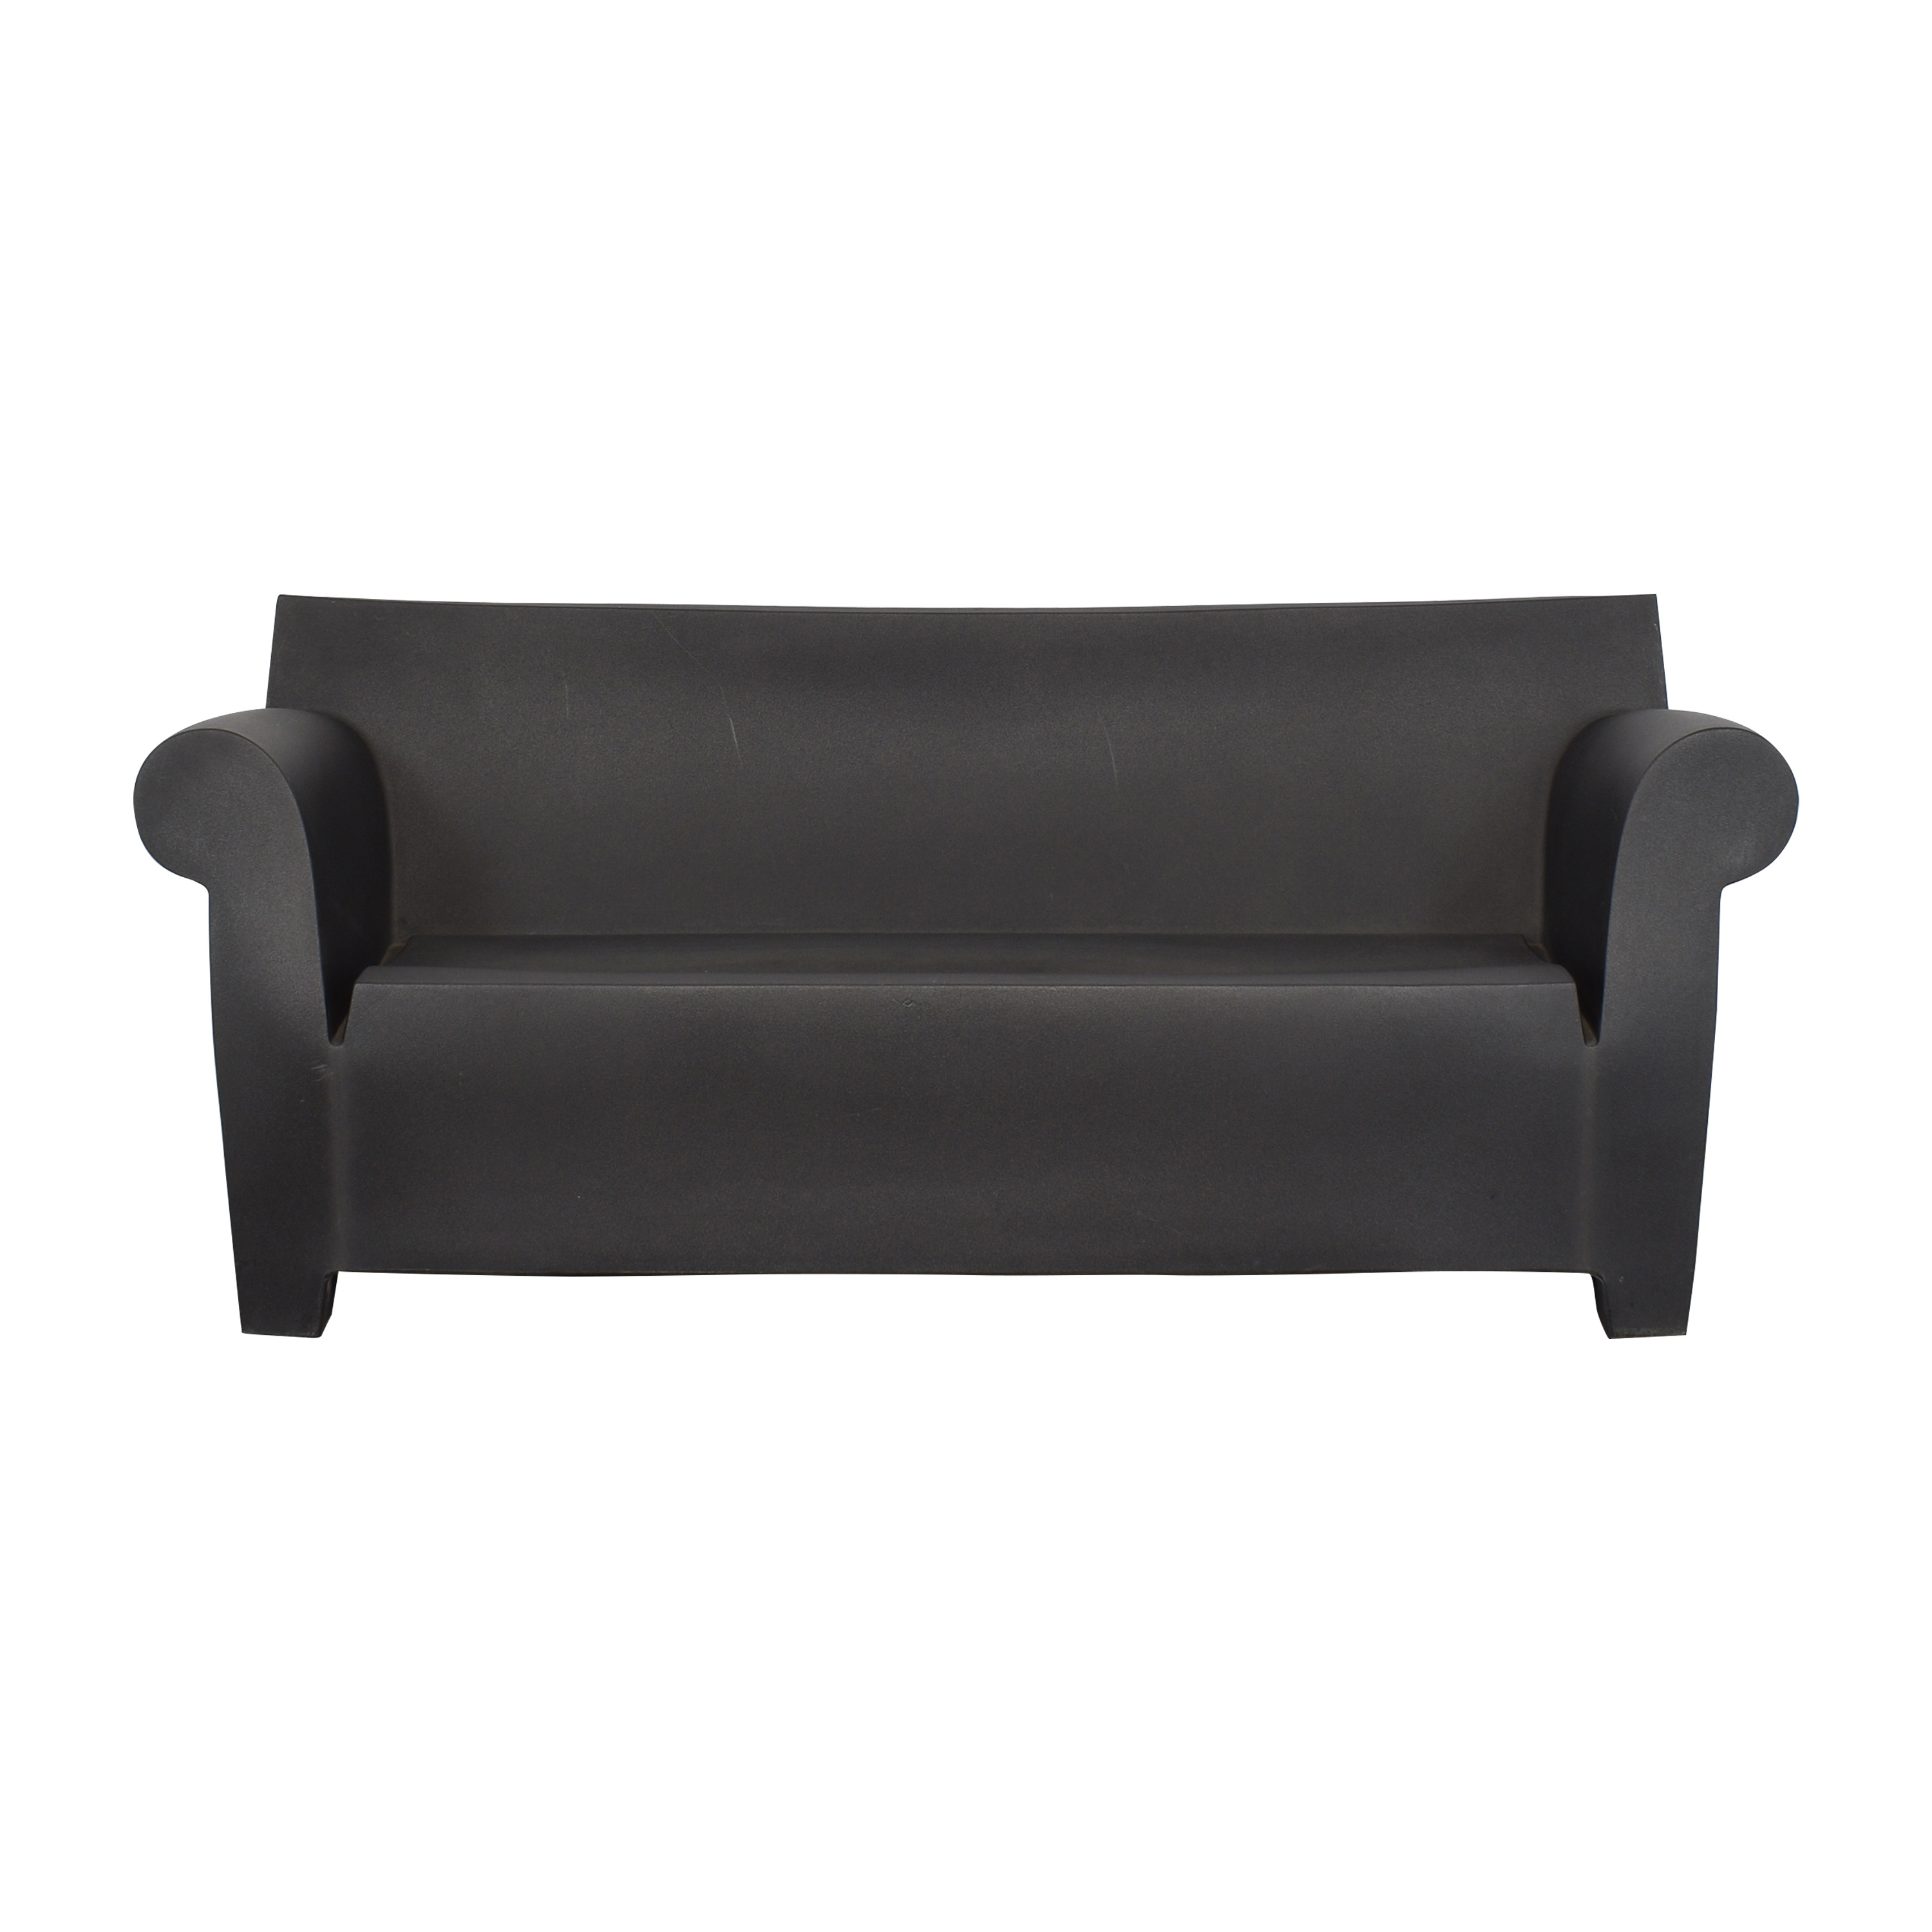 Kartell Kartell Bubble Club Outdoor Sofa pa